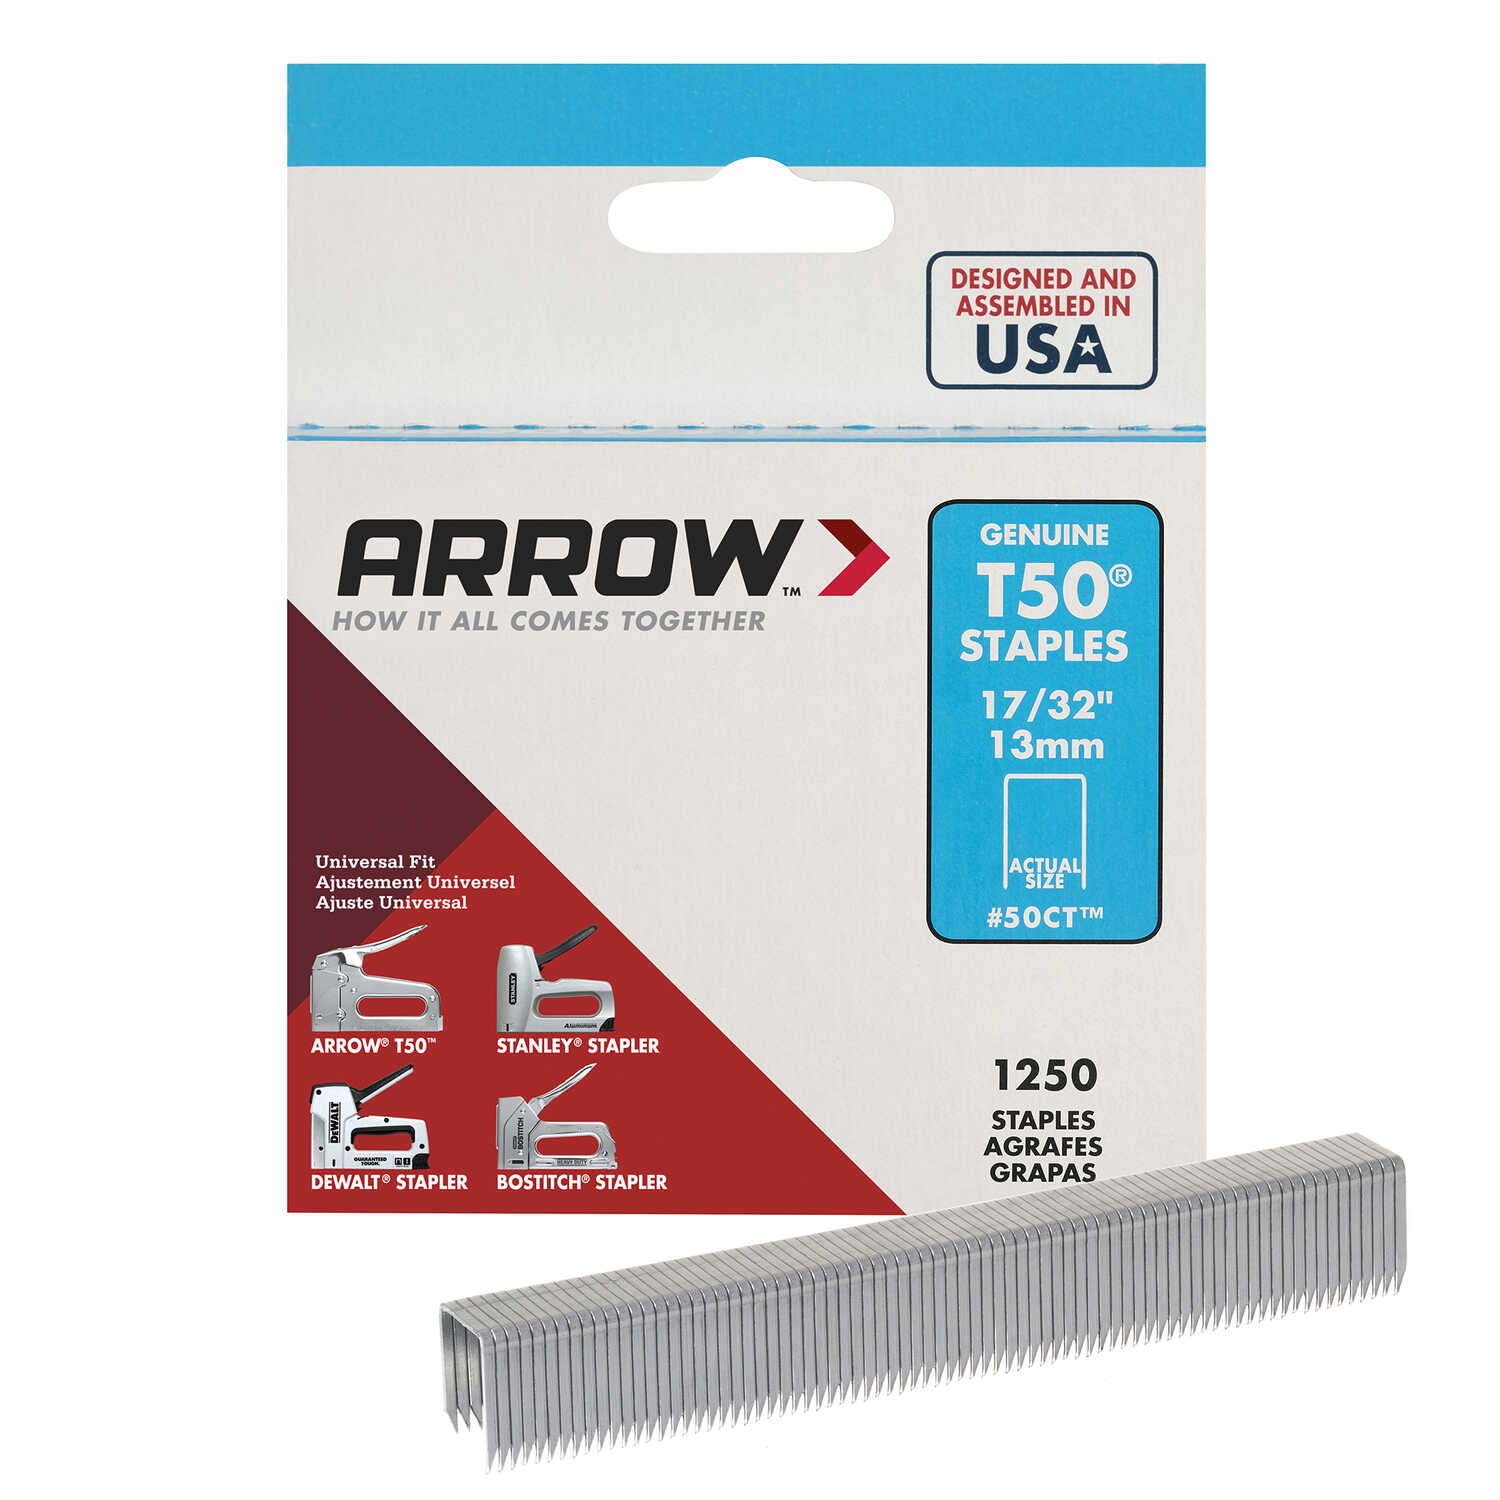 Arrow Fastener  17/32 in. L x 3/8 in. W Galvanized Steel  Flat Crown  Heavy Duty Staples  18 Ga. 125